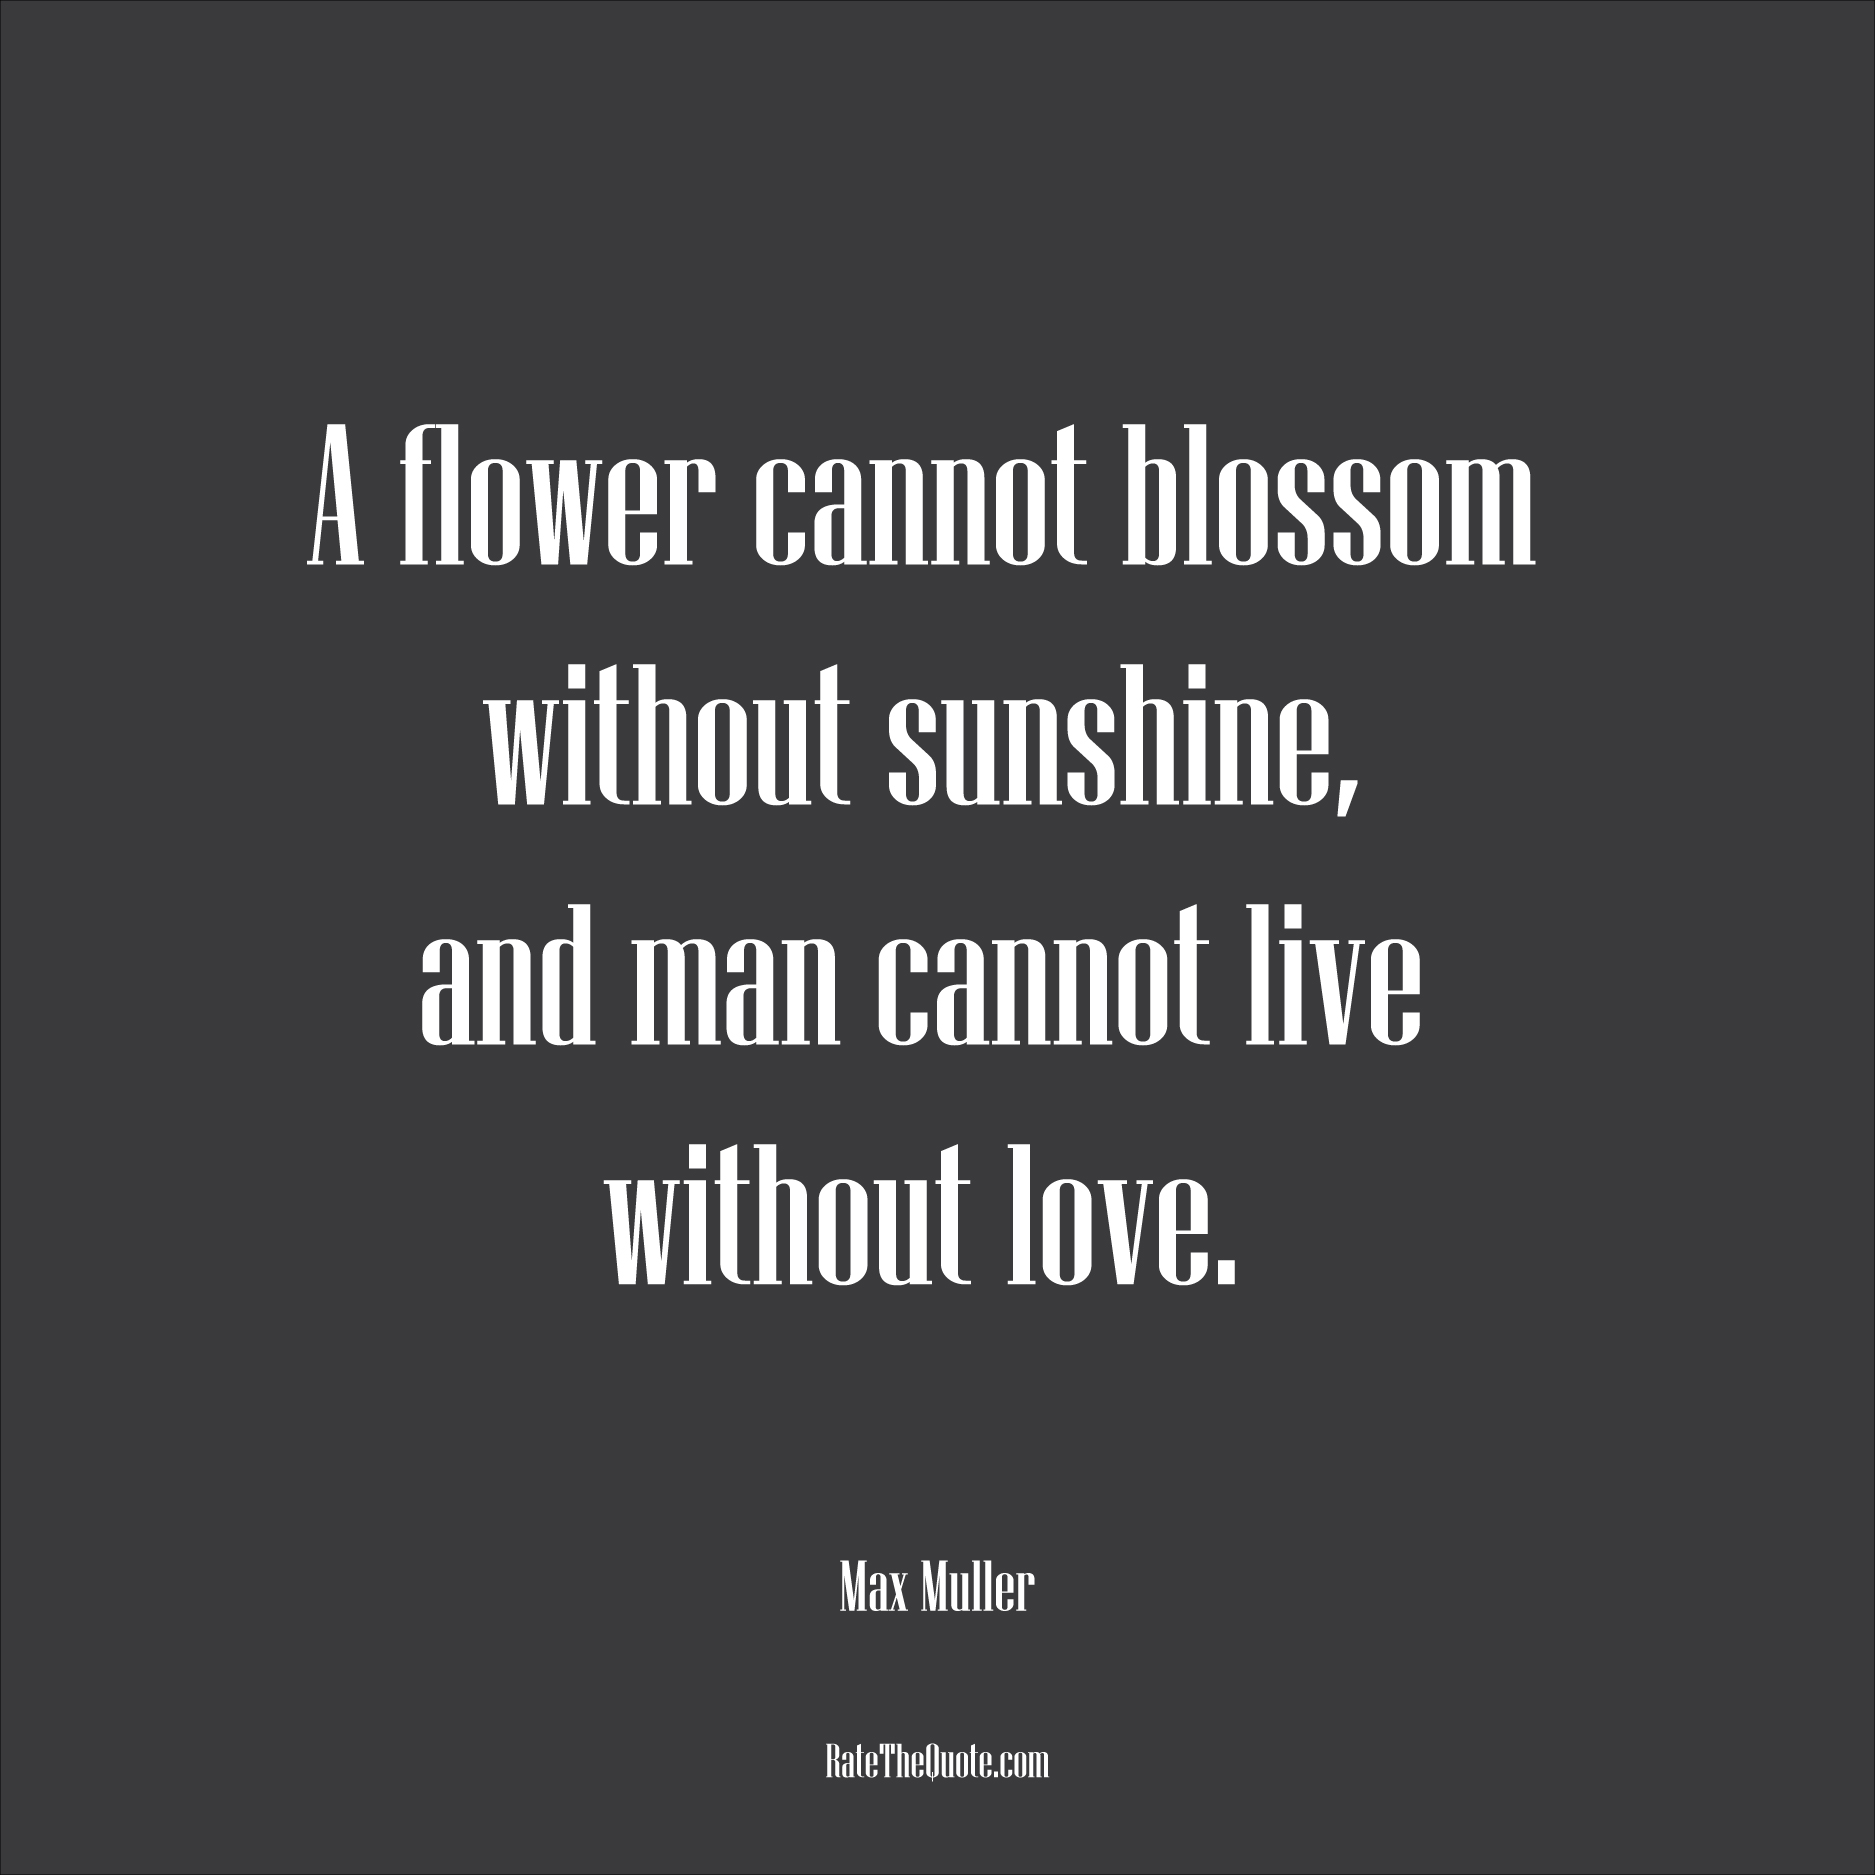 Love Quotes A flower cannot blossom without sunshine, and man cannot live without love. Max Muller